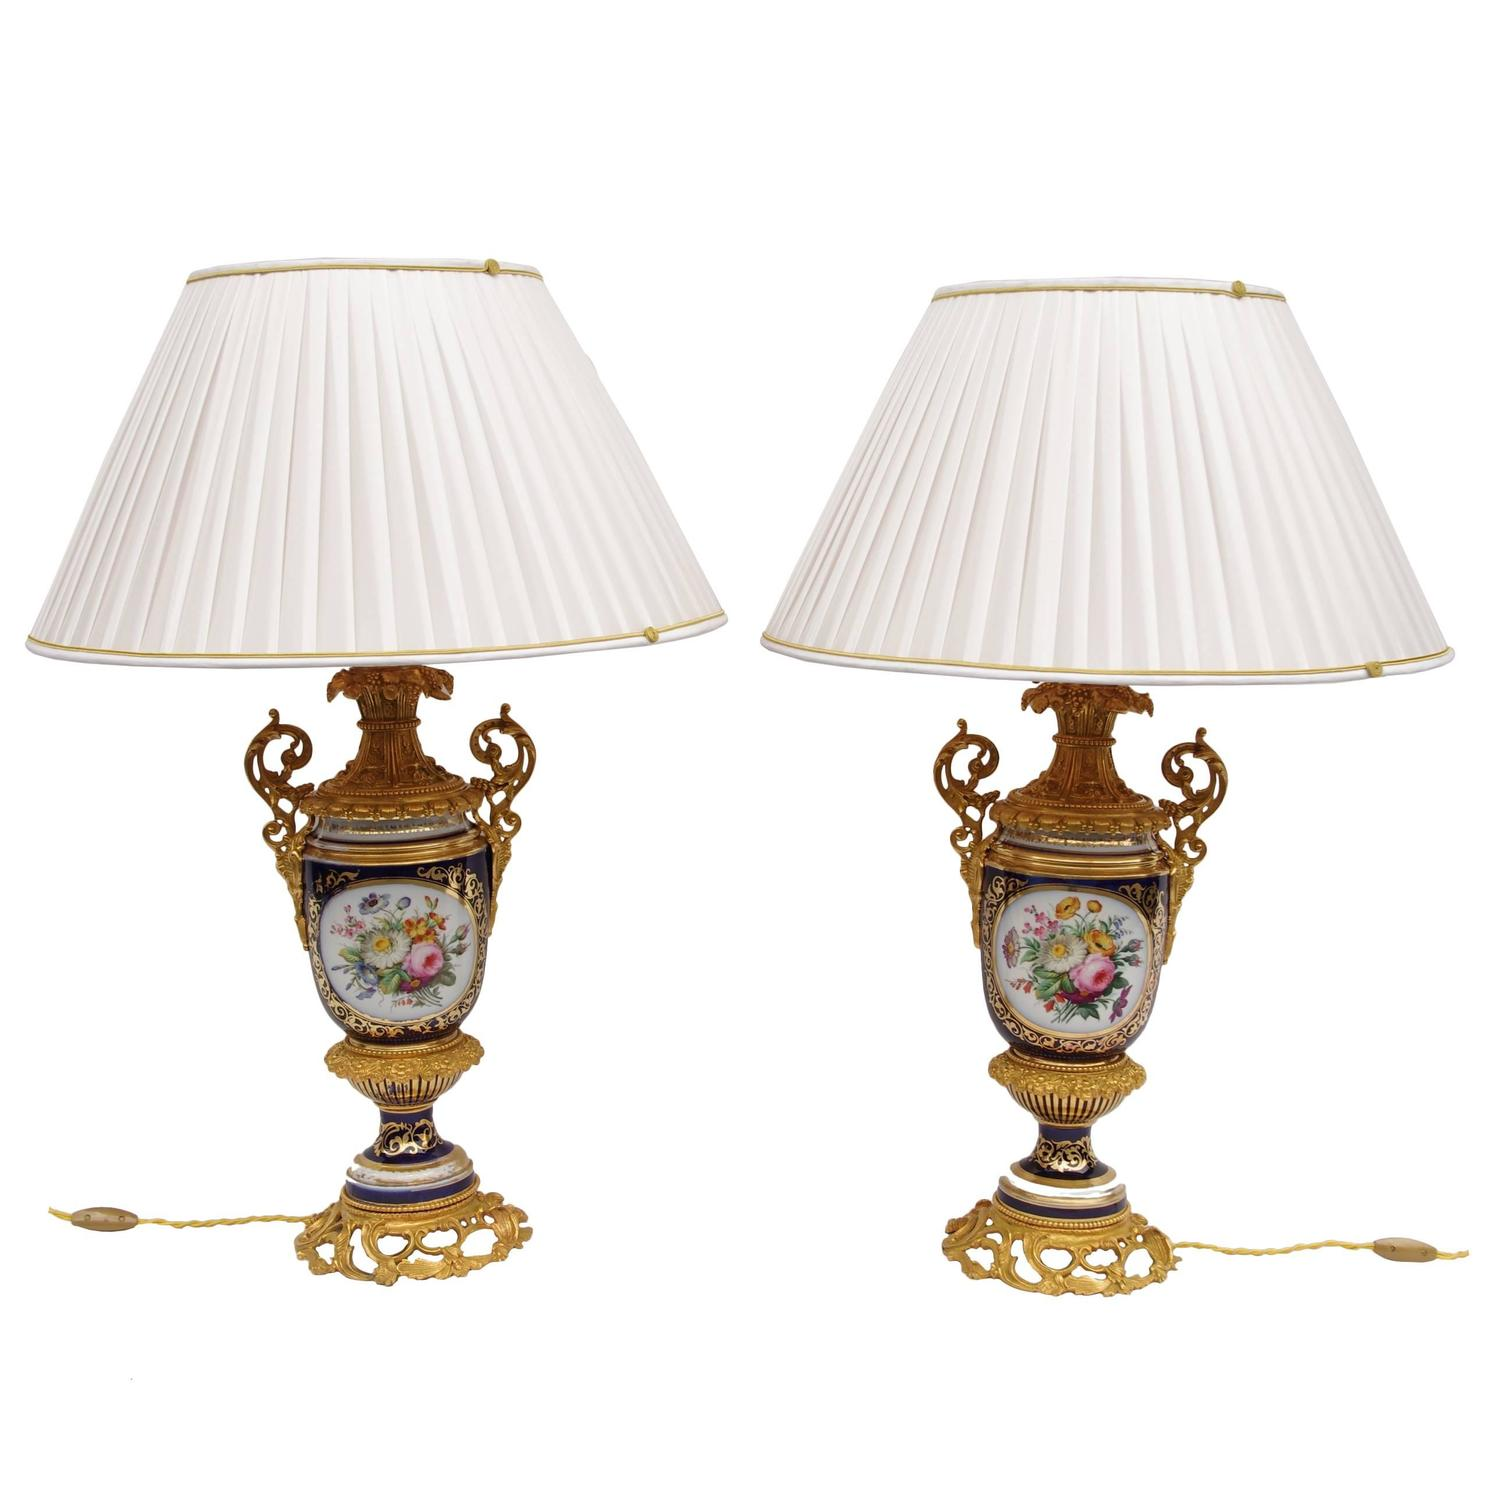 Svres porcelain table lamps 8 for sale at 1stdibs 19th century pair of great svres porcelain lamps mozeypictures Images